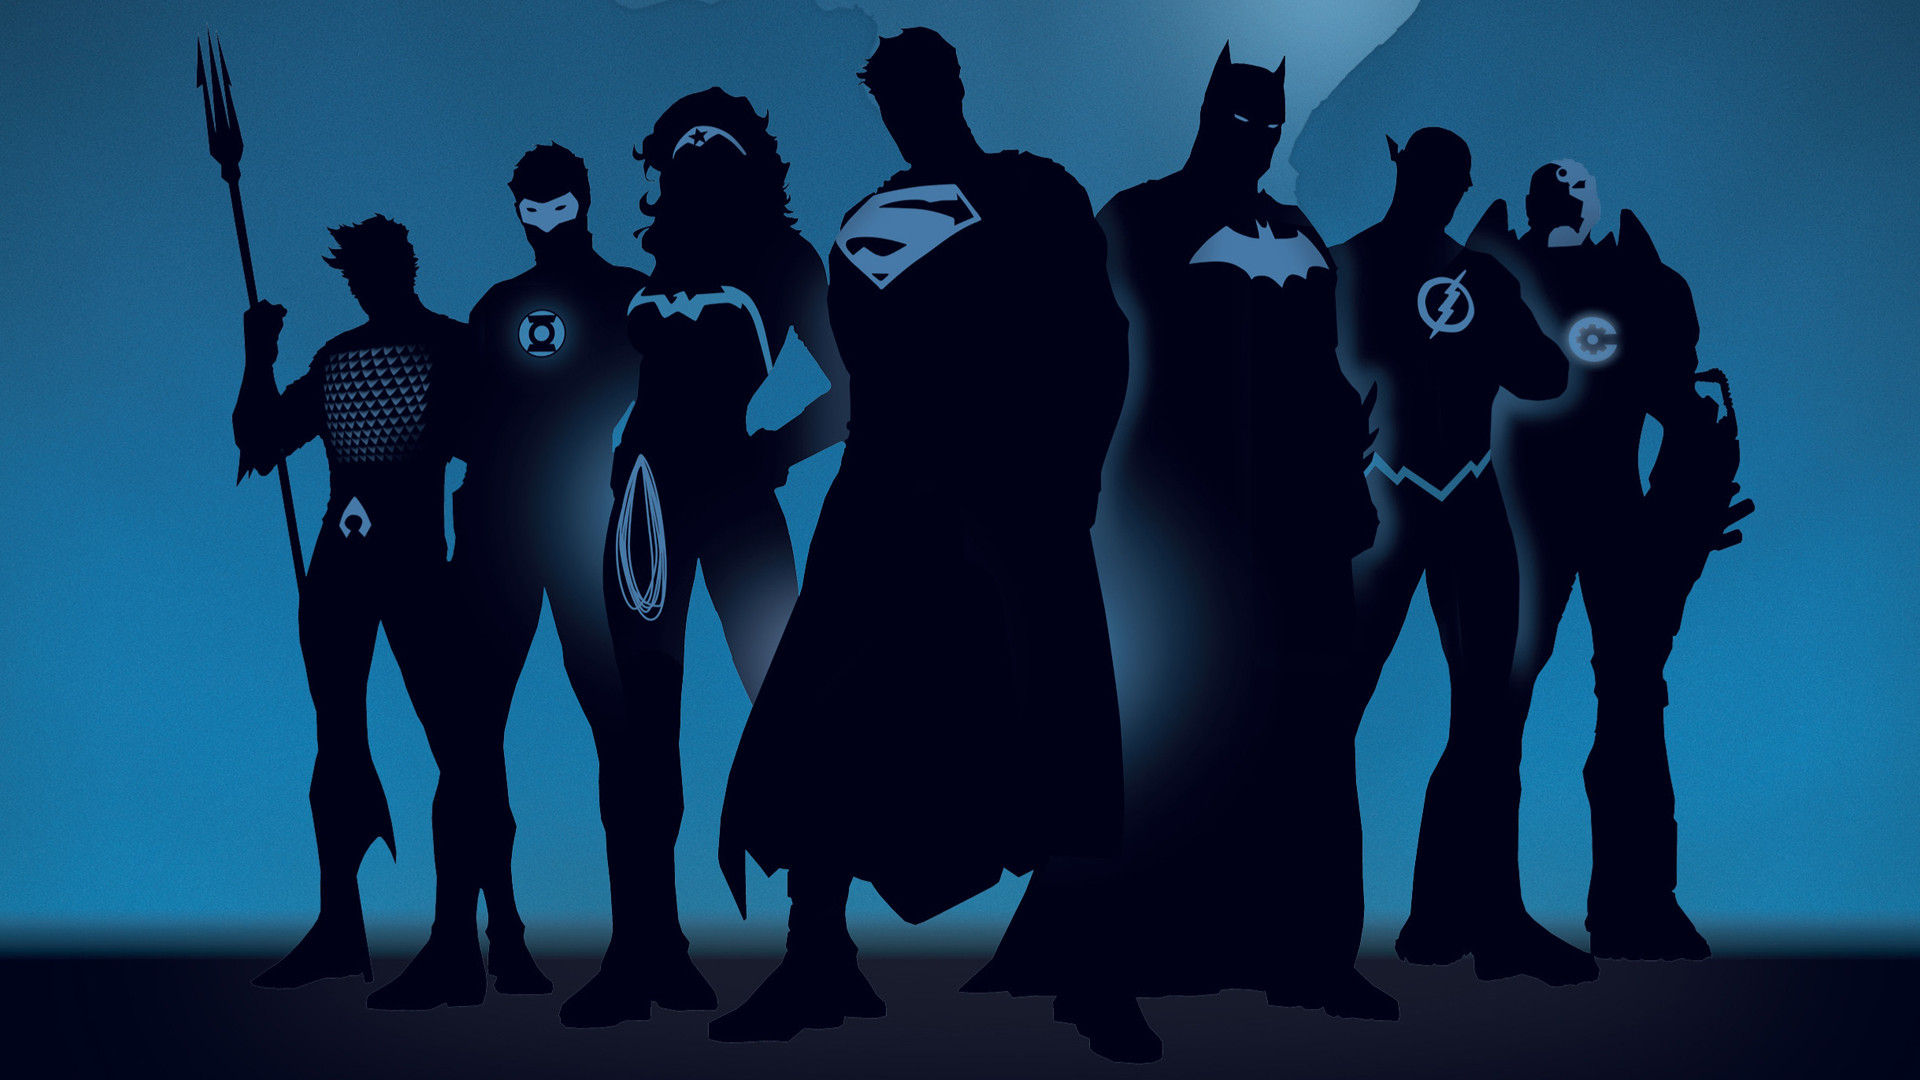 1920x1080 Super Heroes in God's League of Justice